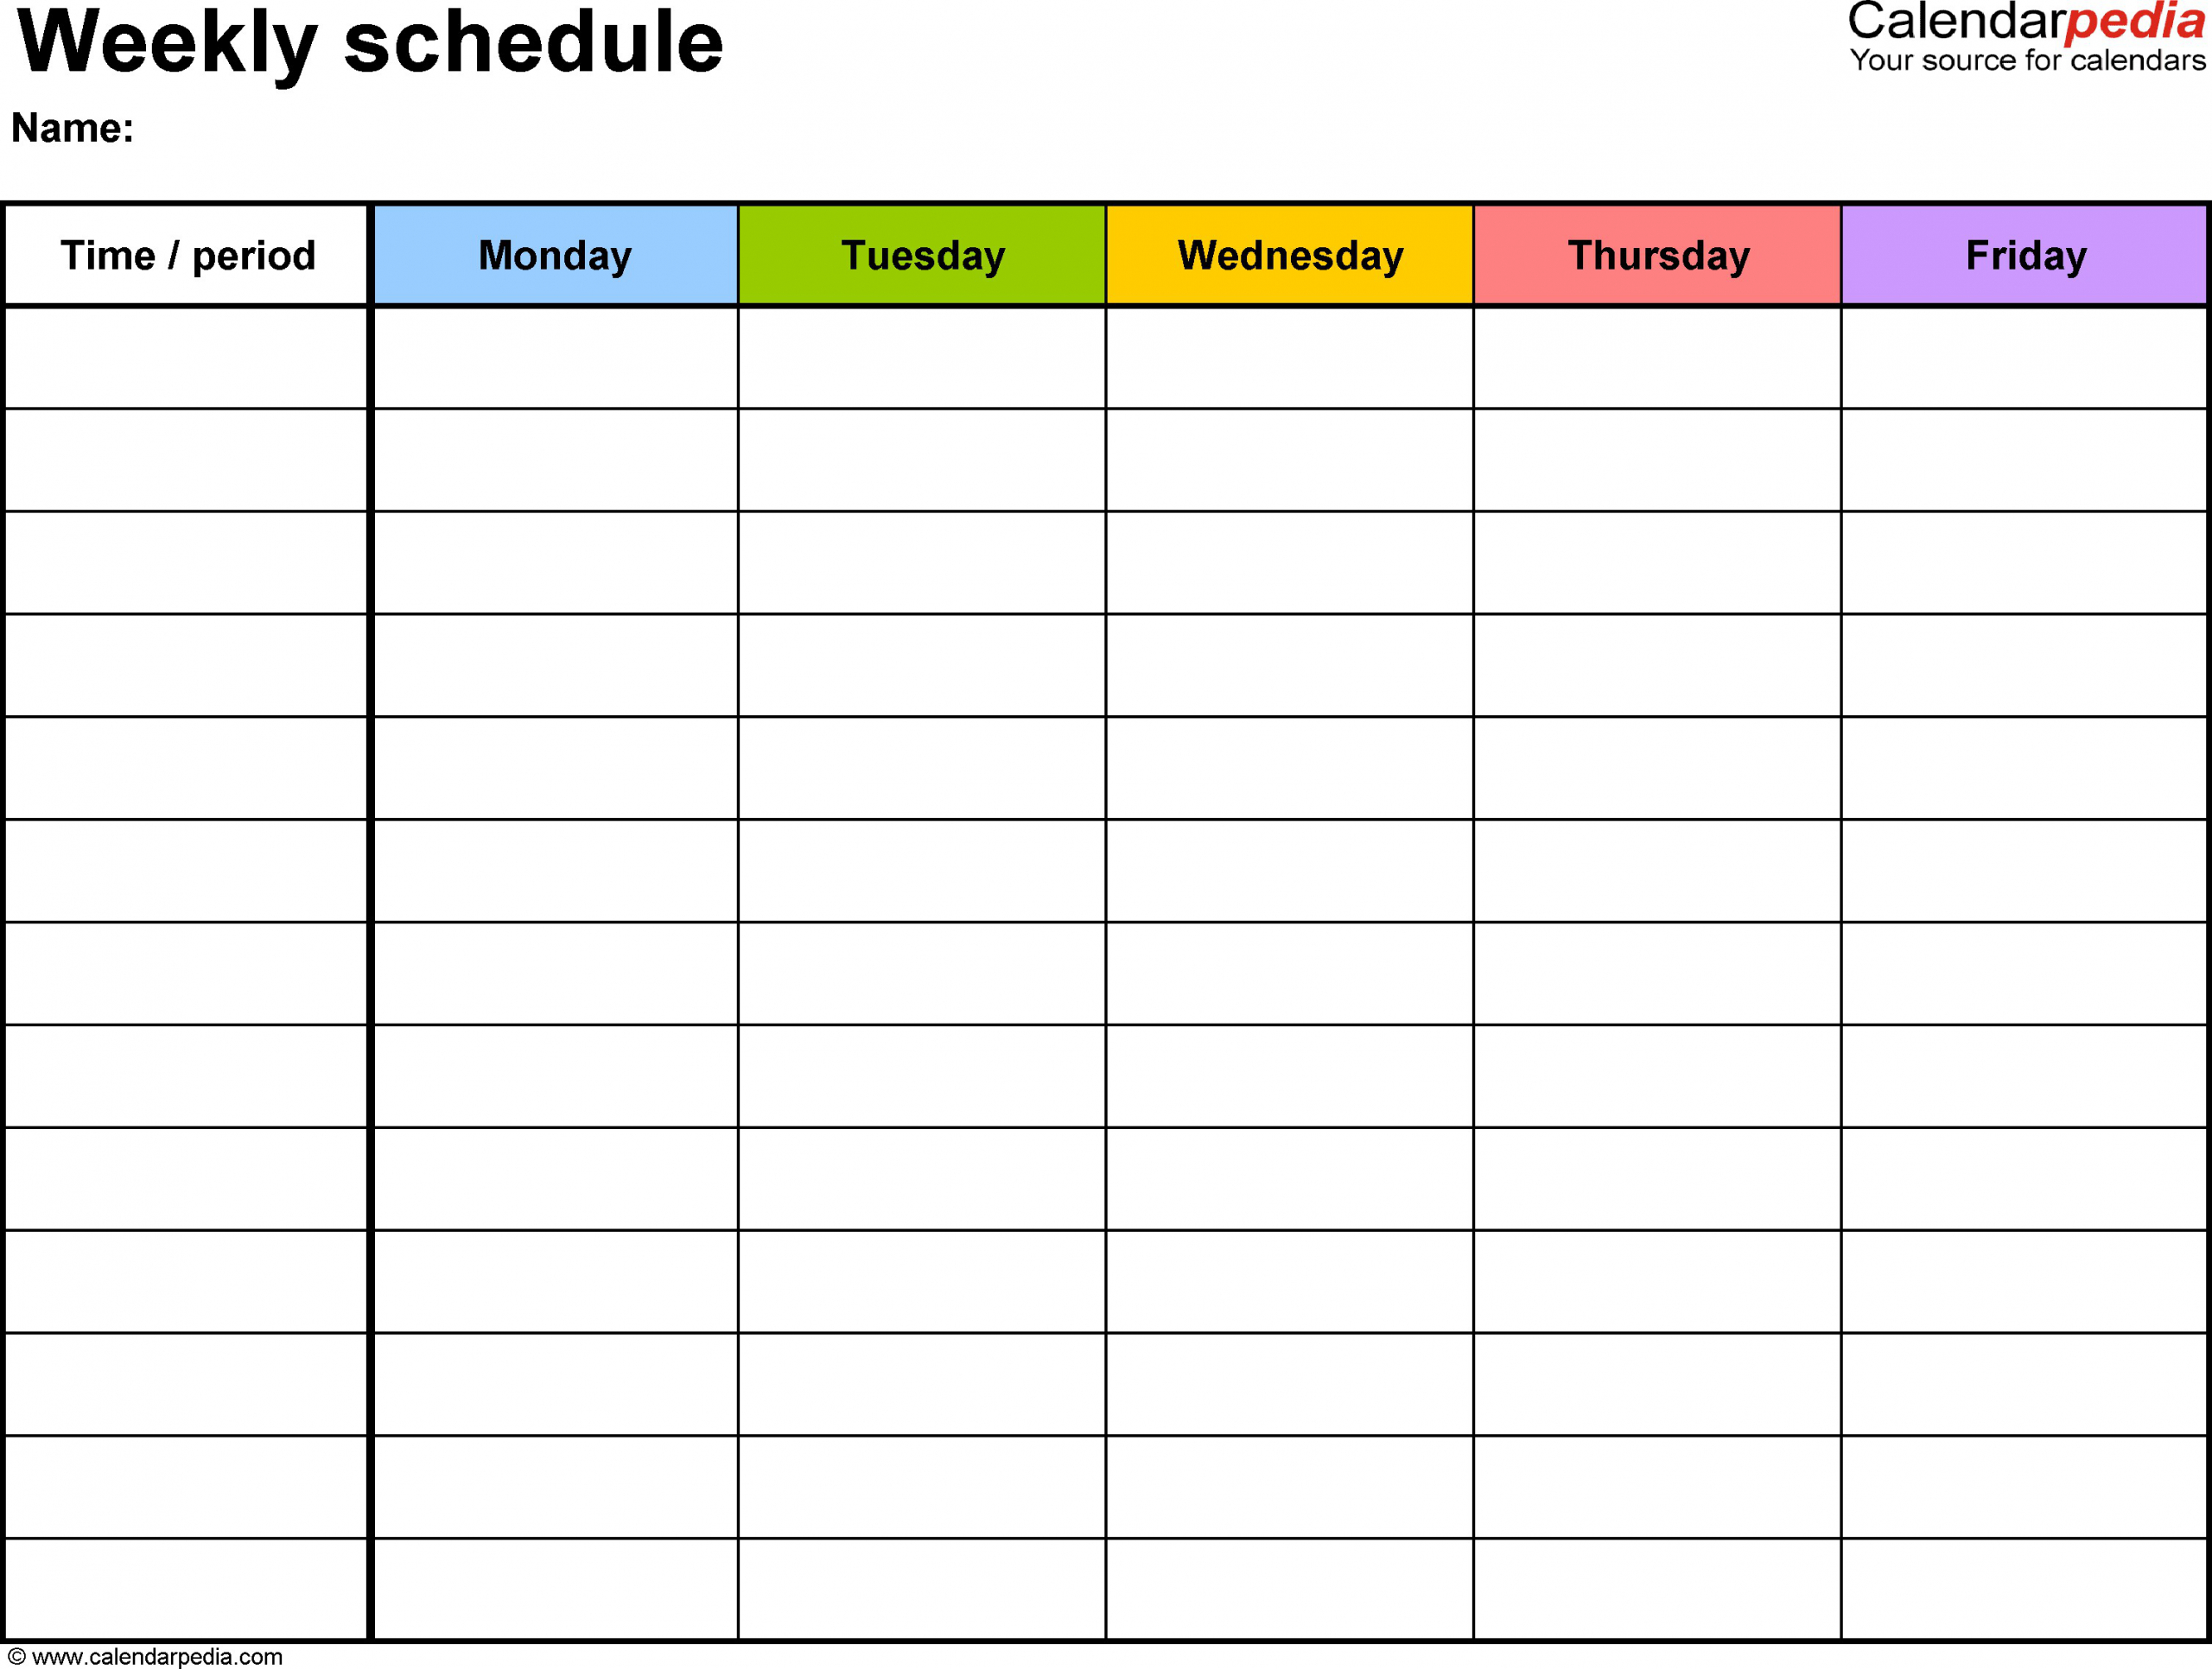 Monday Friday Calendar In 2020 | Daily Schedule Template Free Printable Monday-Friday Calendar